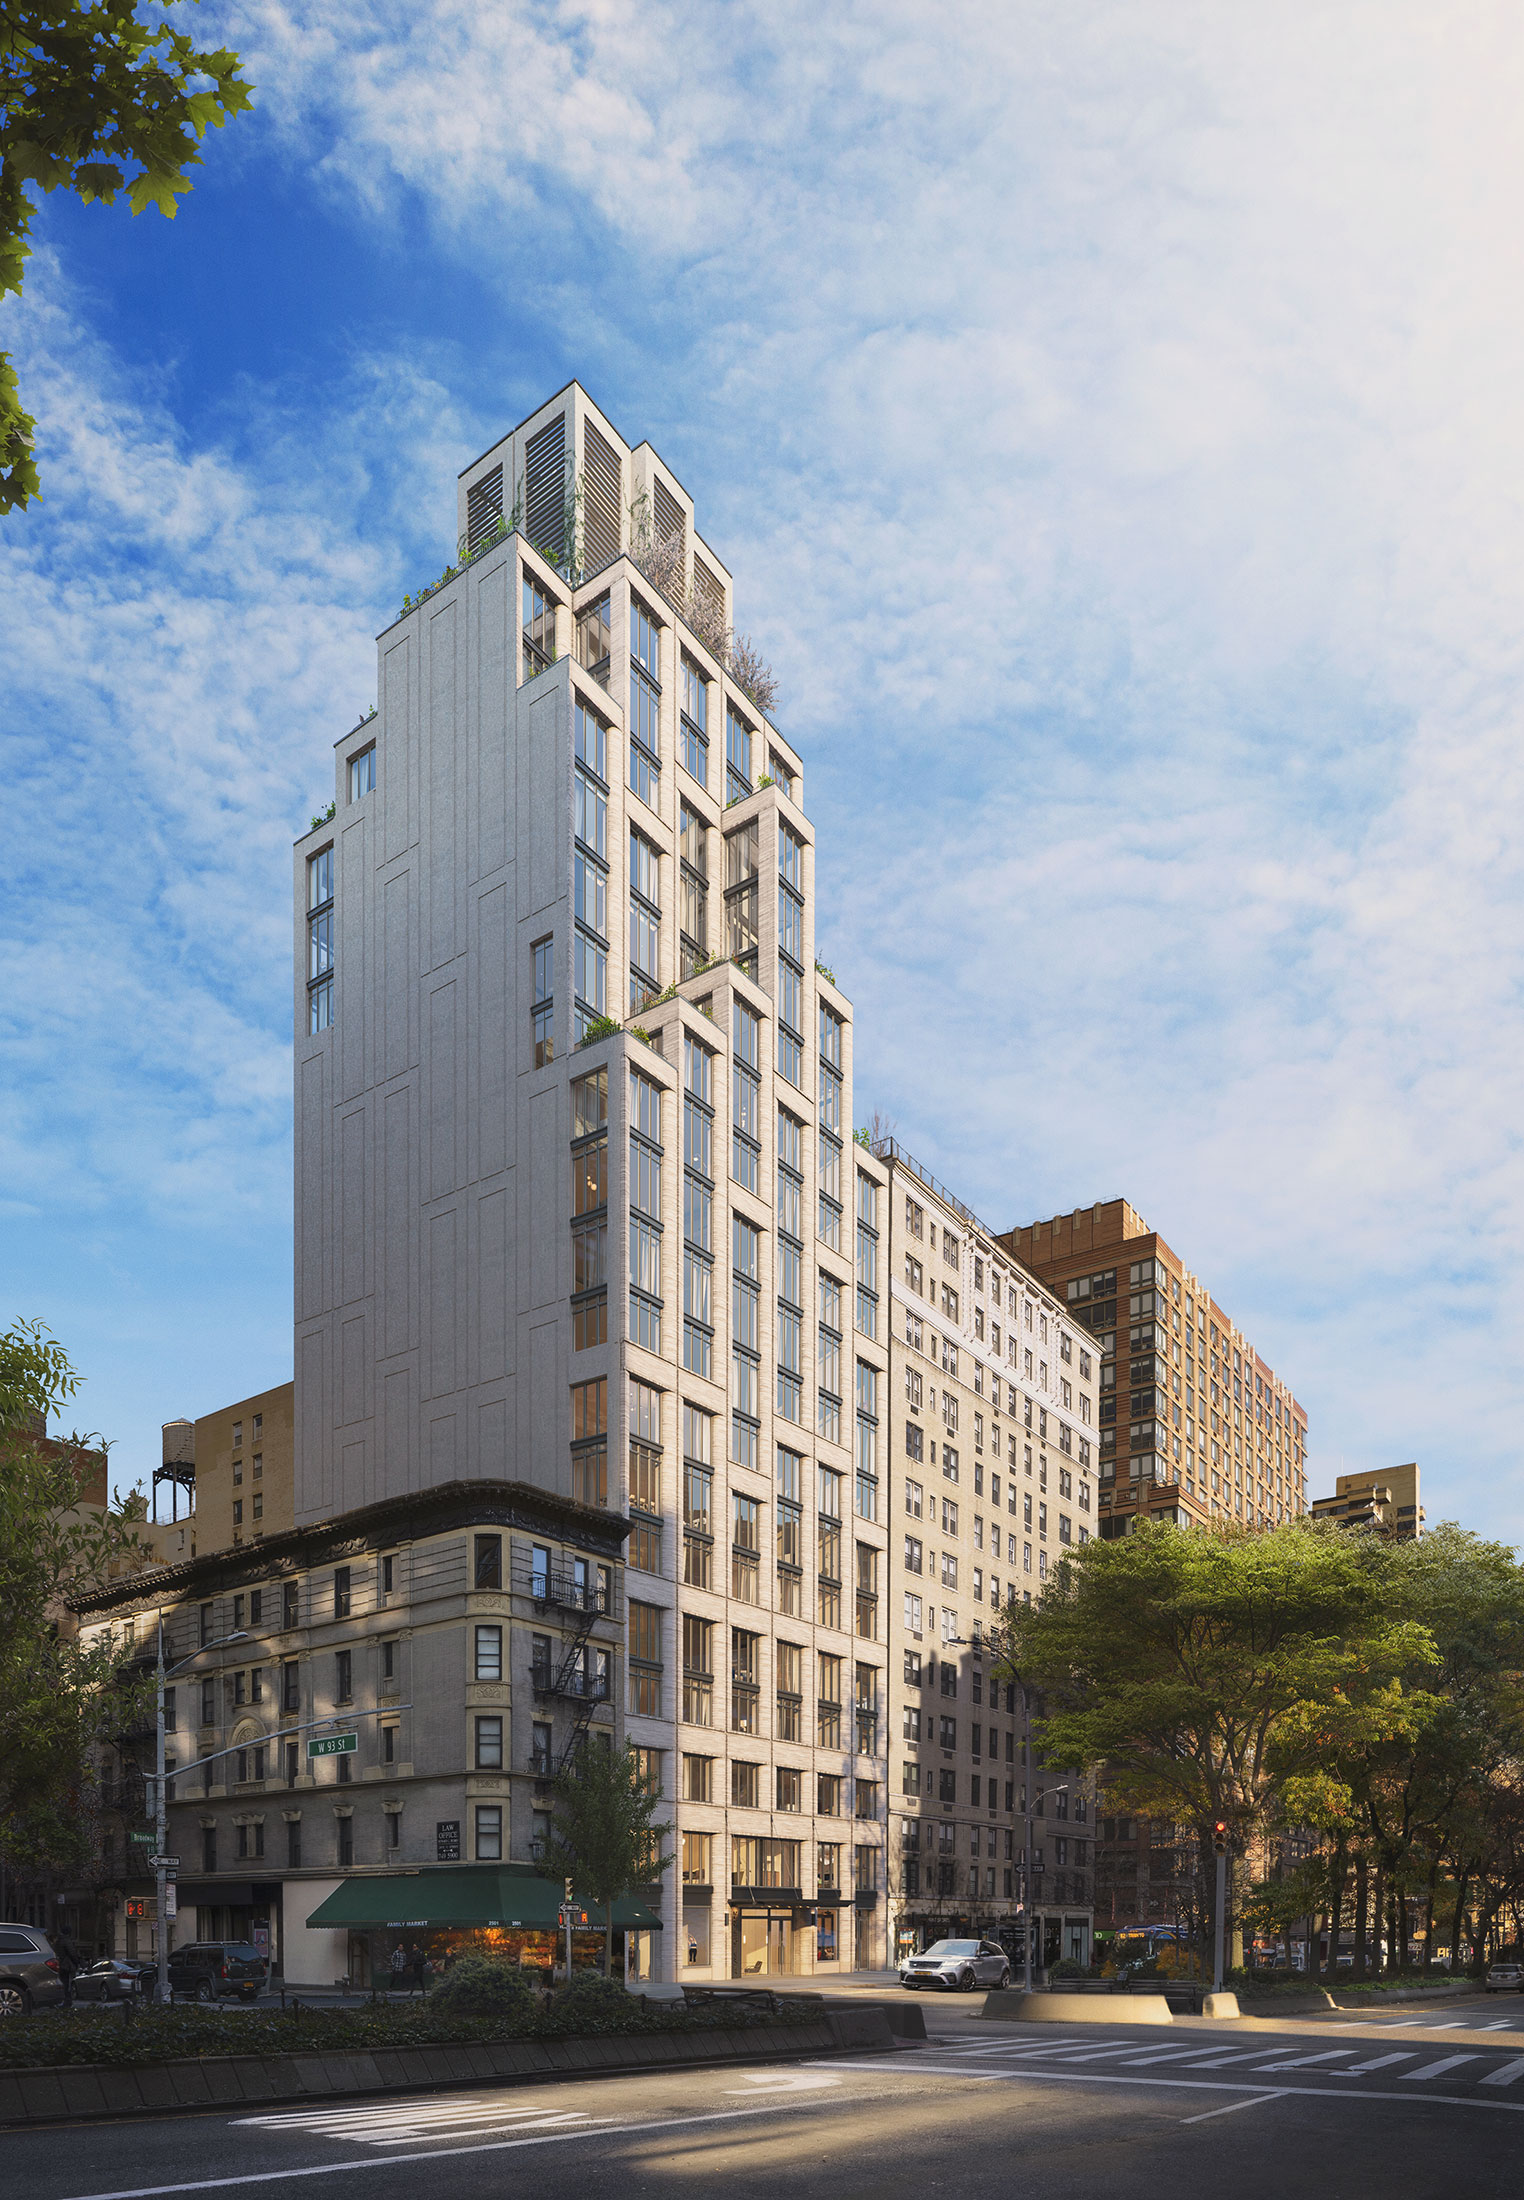 Architectural Rendering of the exterior of the 2505 Broadway building project located on the Upper West Side in New York City